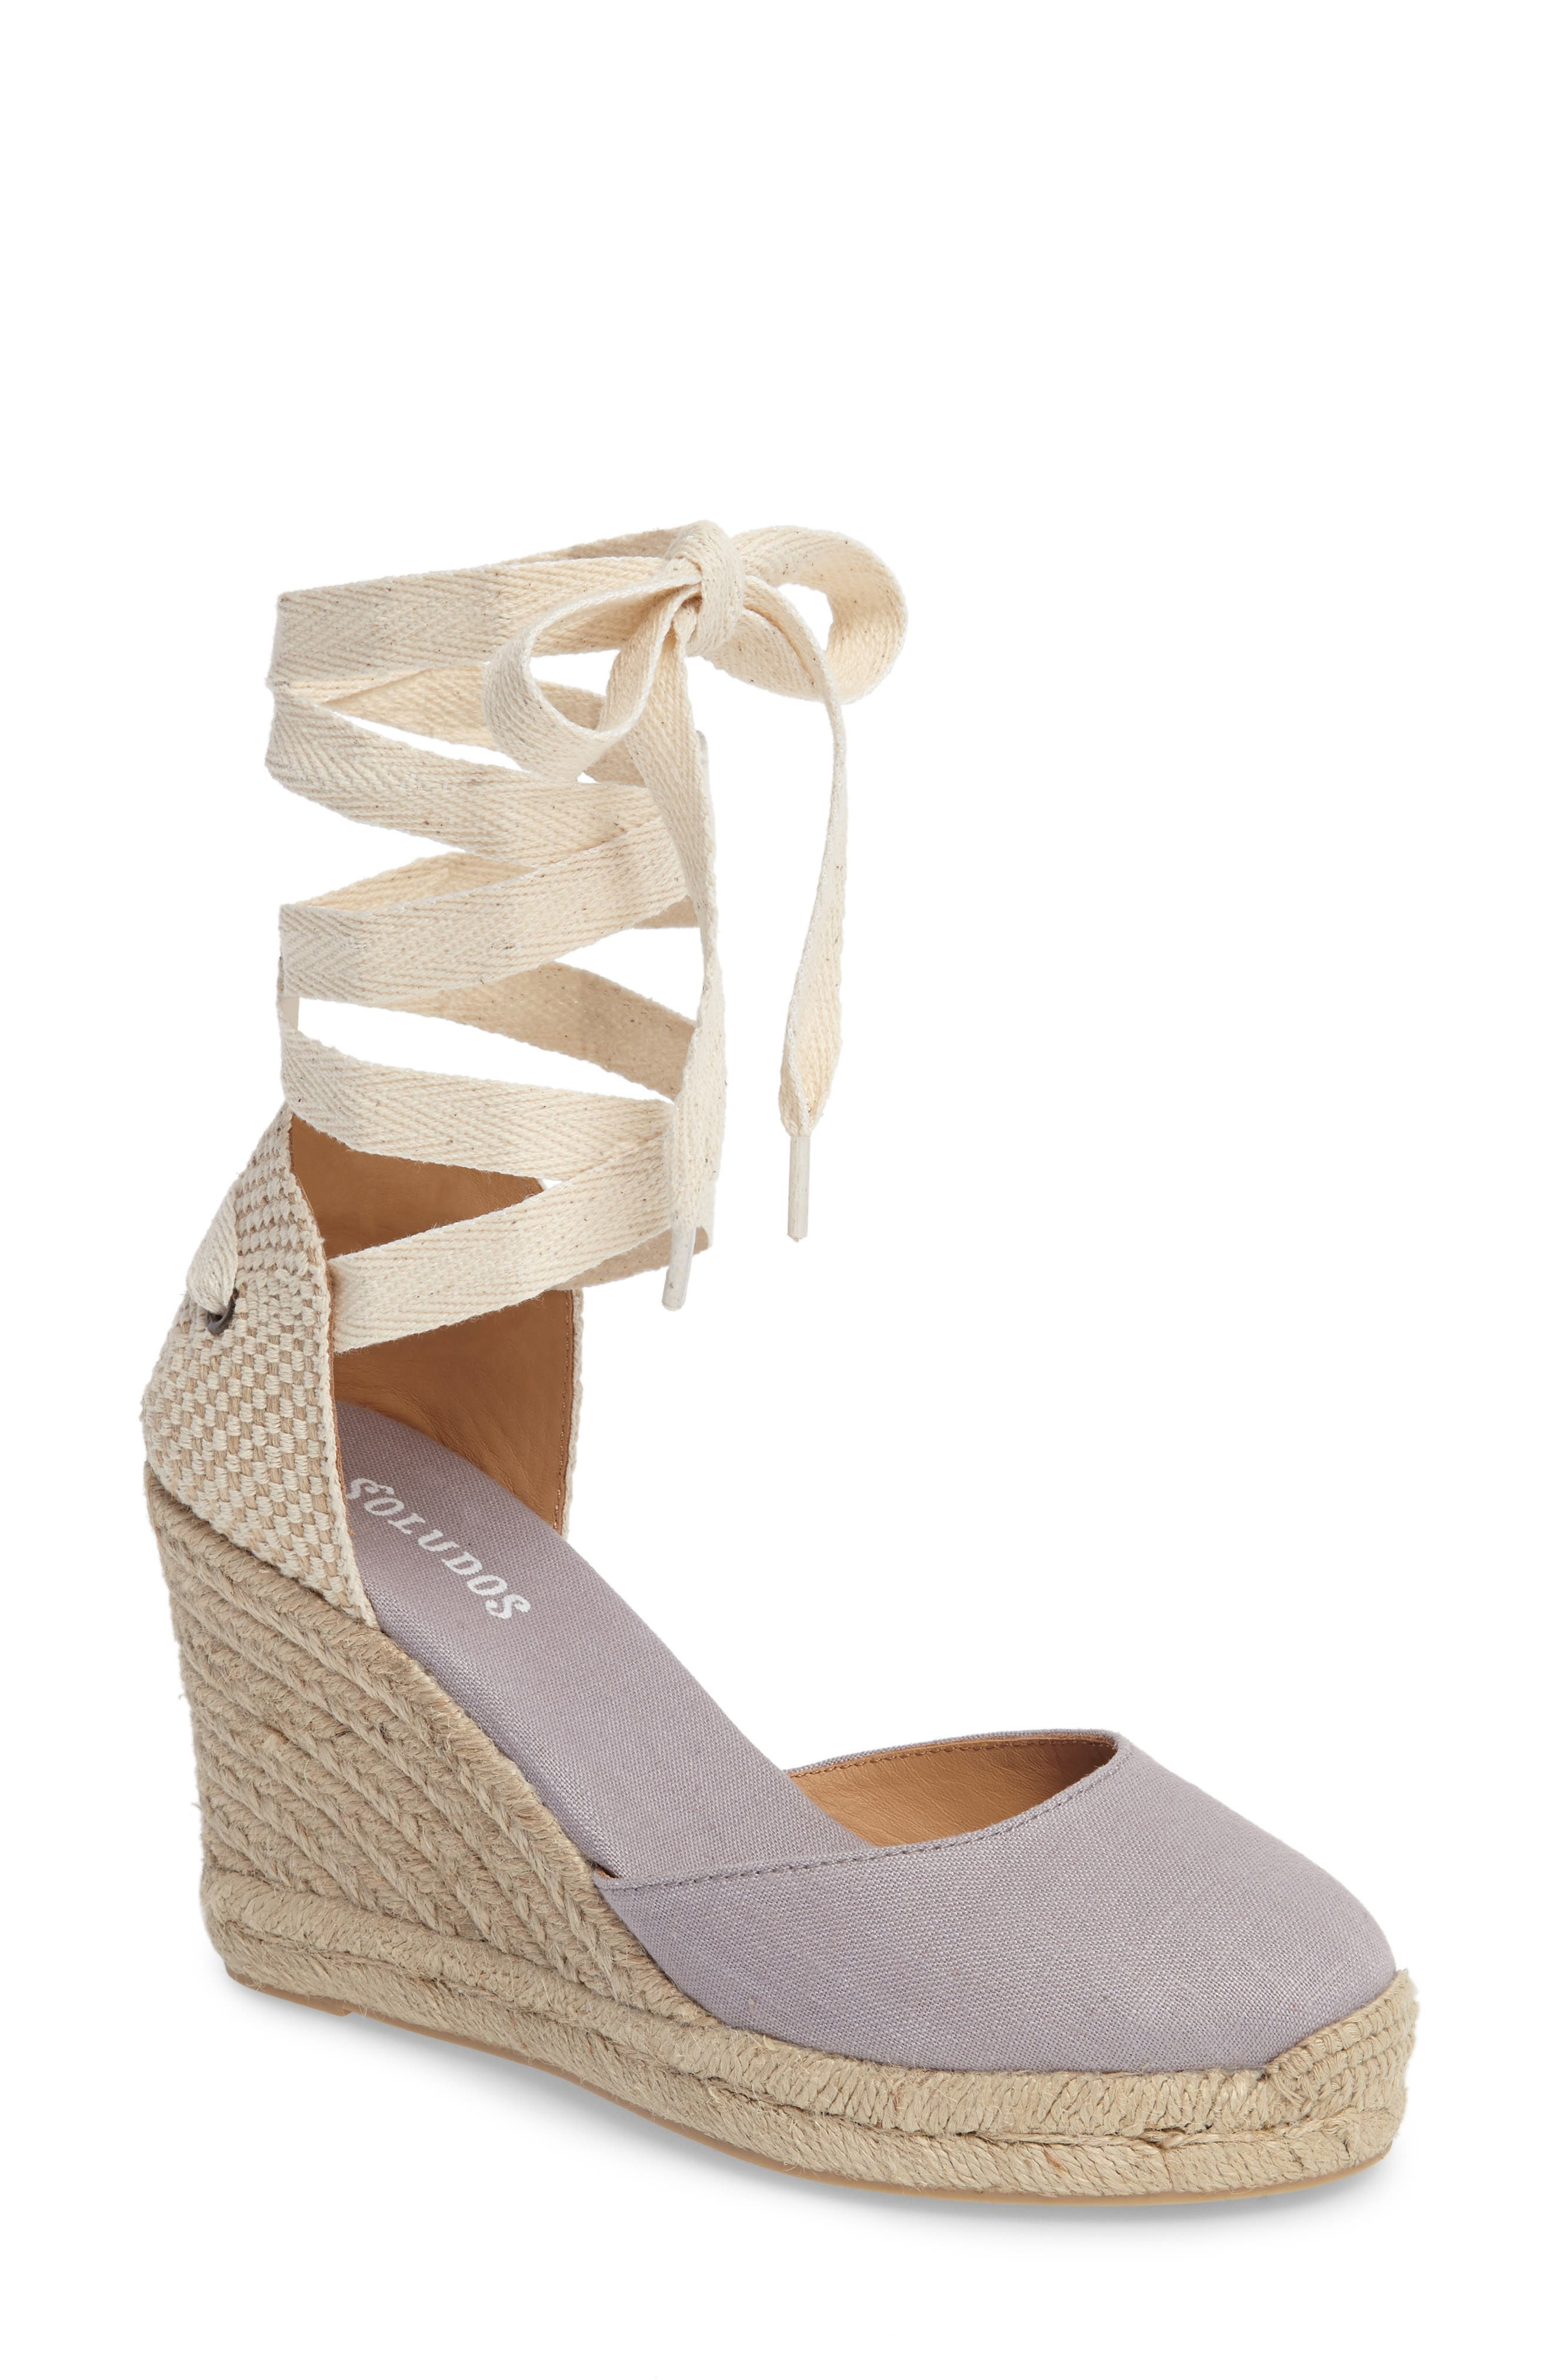 Alternate Image 1 Selected - Soludos Tall Wedge Espadrille (Women)